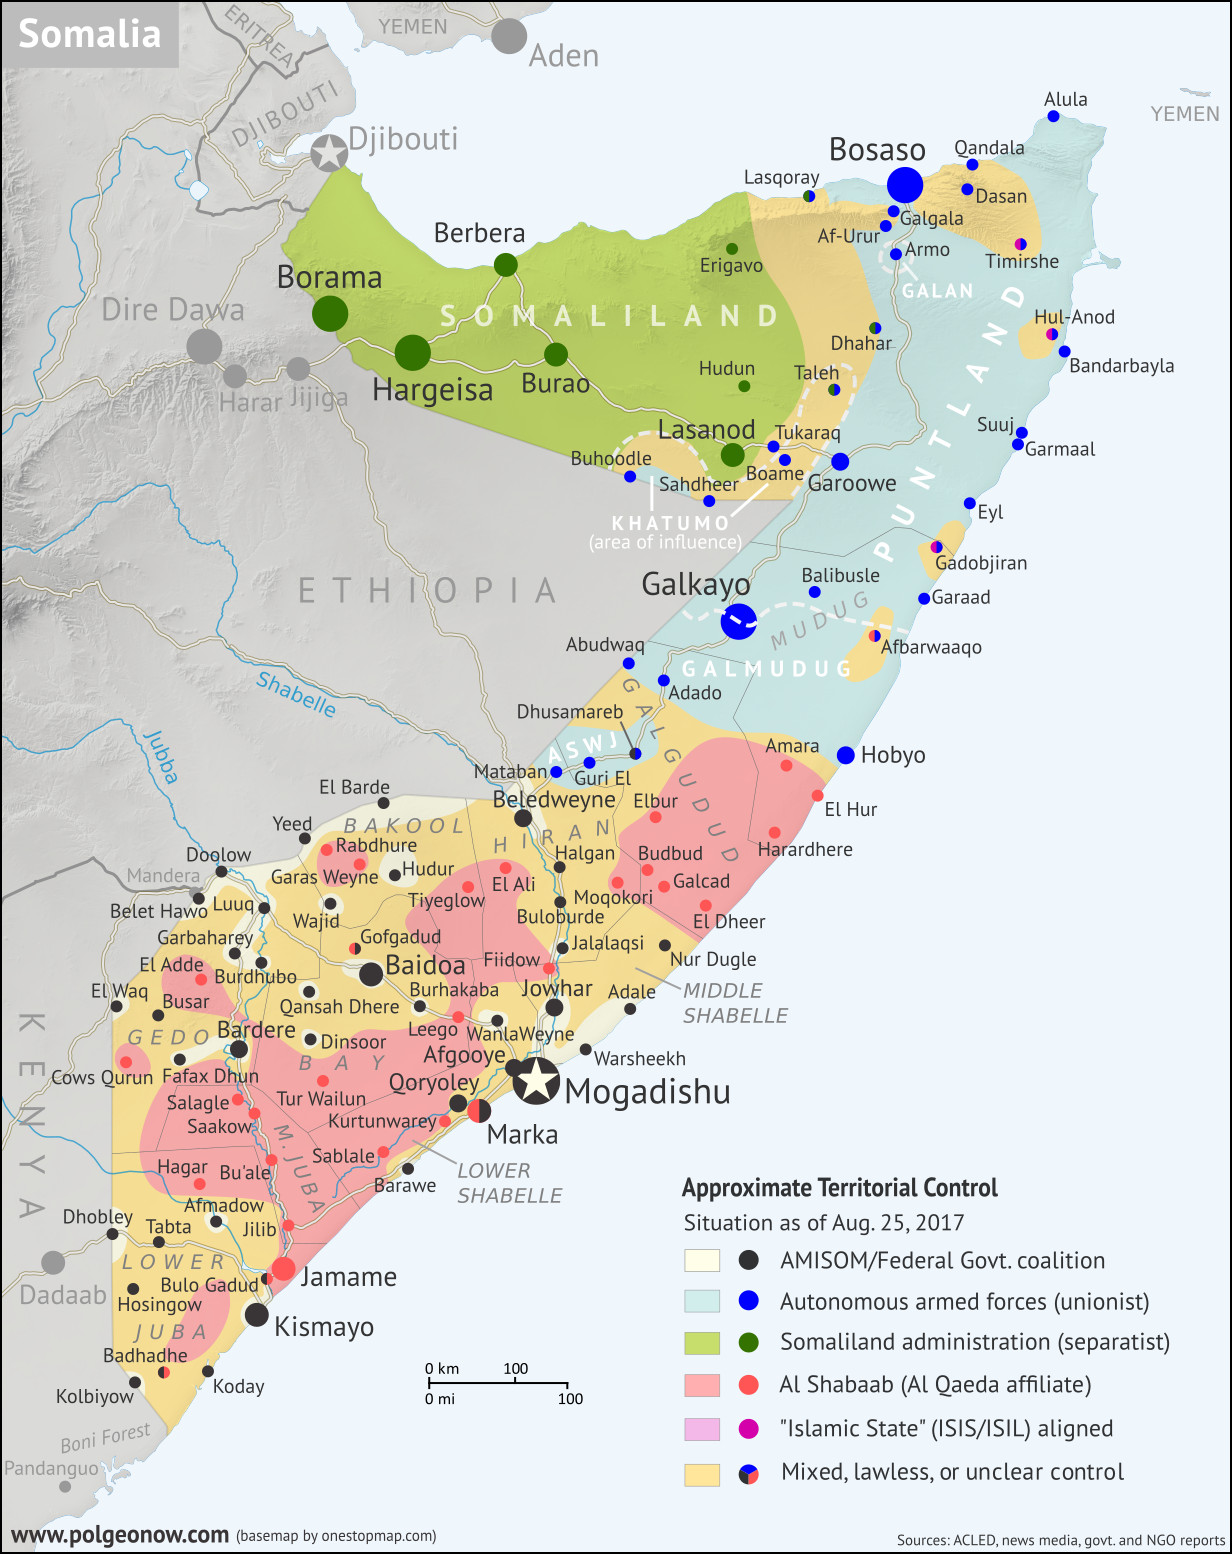 Who controls Somalia? Map (2017). With states, regions, and territorial control. Best Somalia control map online, thoroughly researched and detailed but concise. Shows territorial control by Federal Government of Somalia (FGS), Al Shabaab, so-called Islamic State (ISIS/ISIL), separatist Somaliland, and autonomous states Puntland, Galmudug, Khatumo, and the ASWJ Sufi militia. Updated to of August 25, 2017. Colorblind accessible.